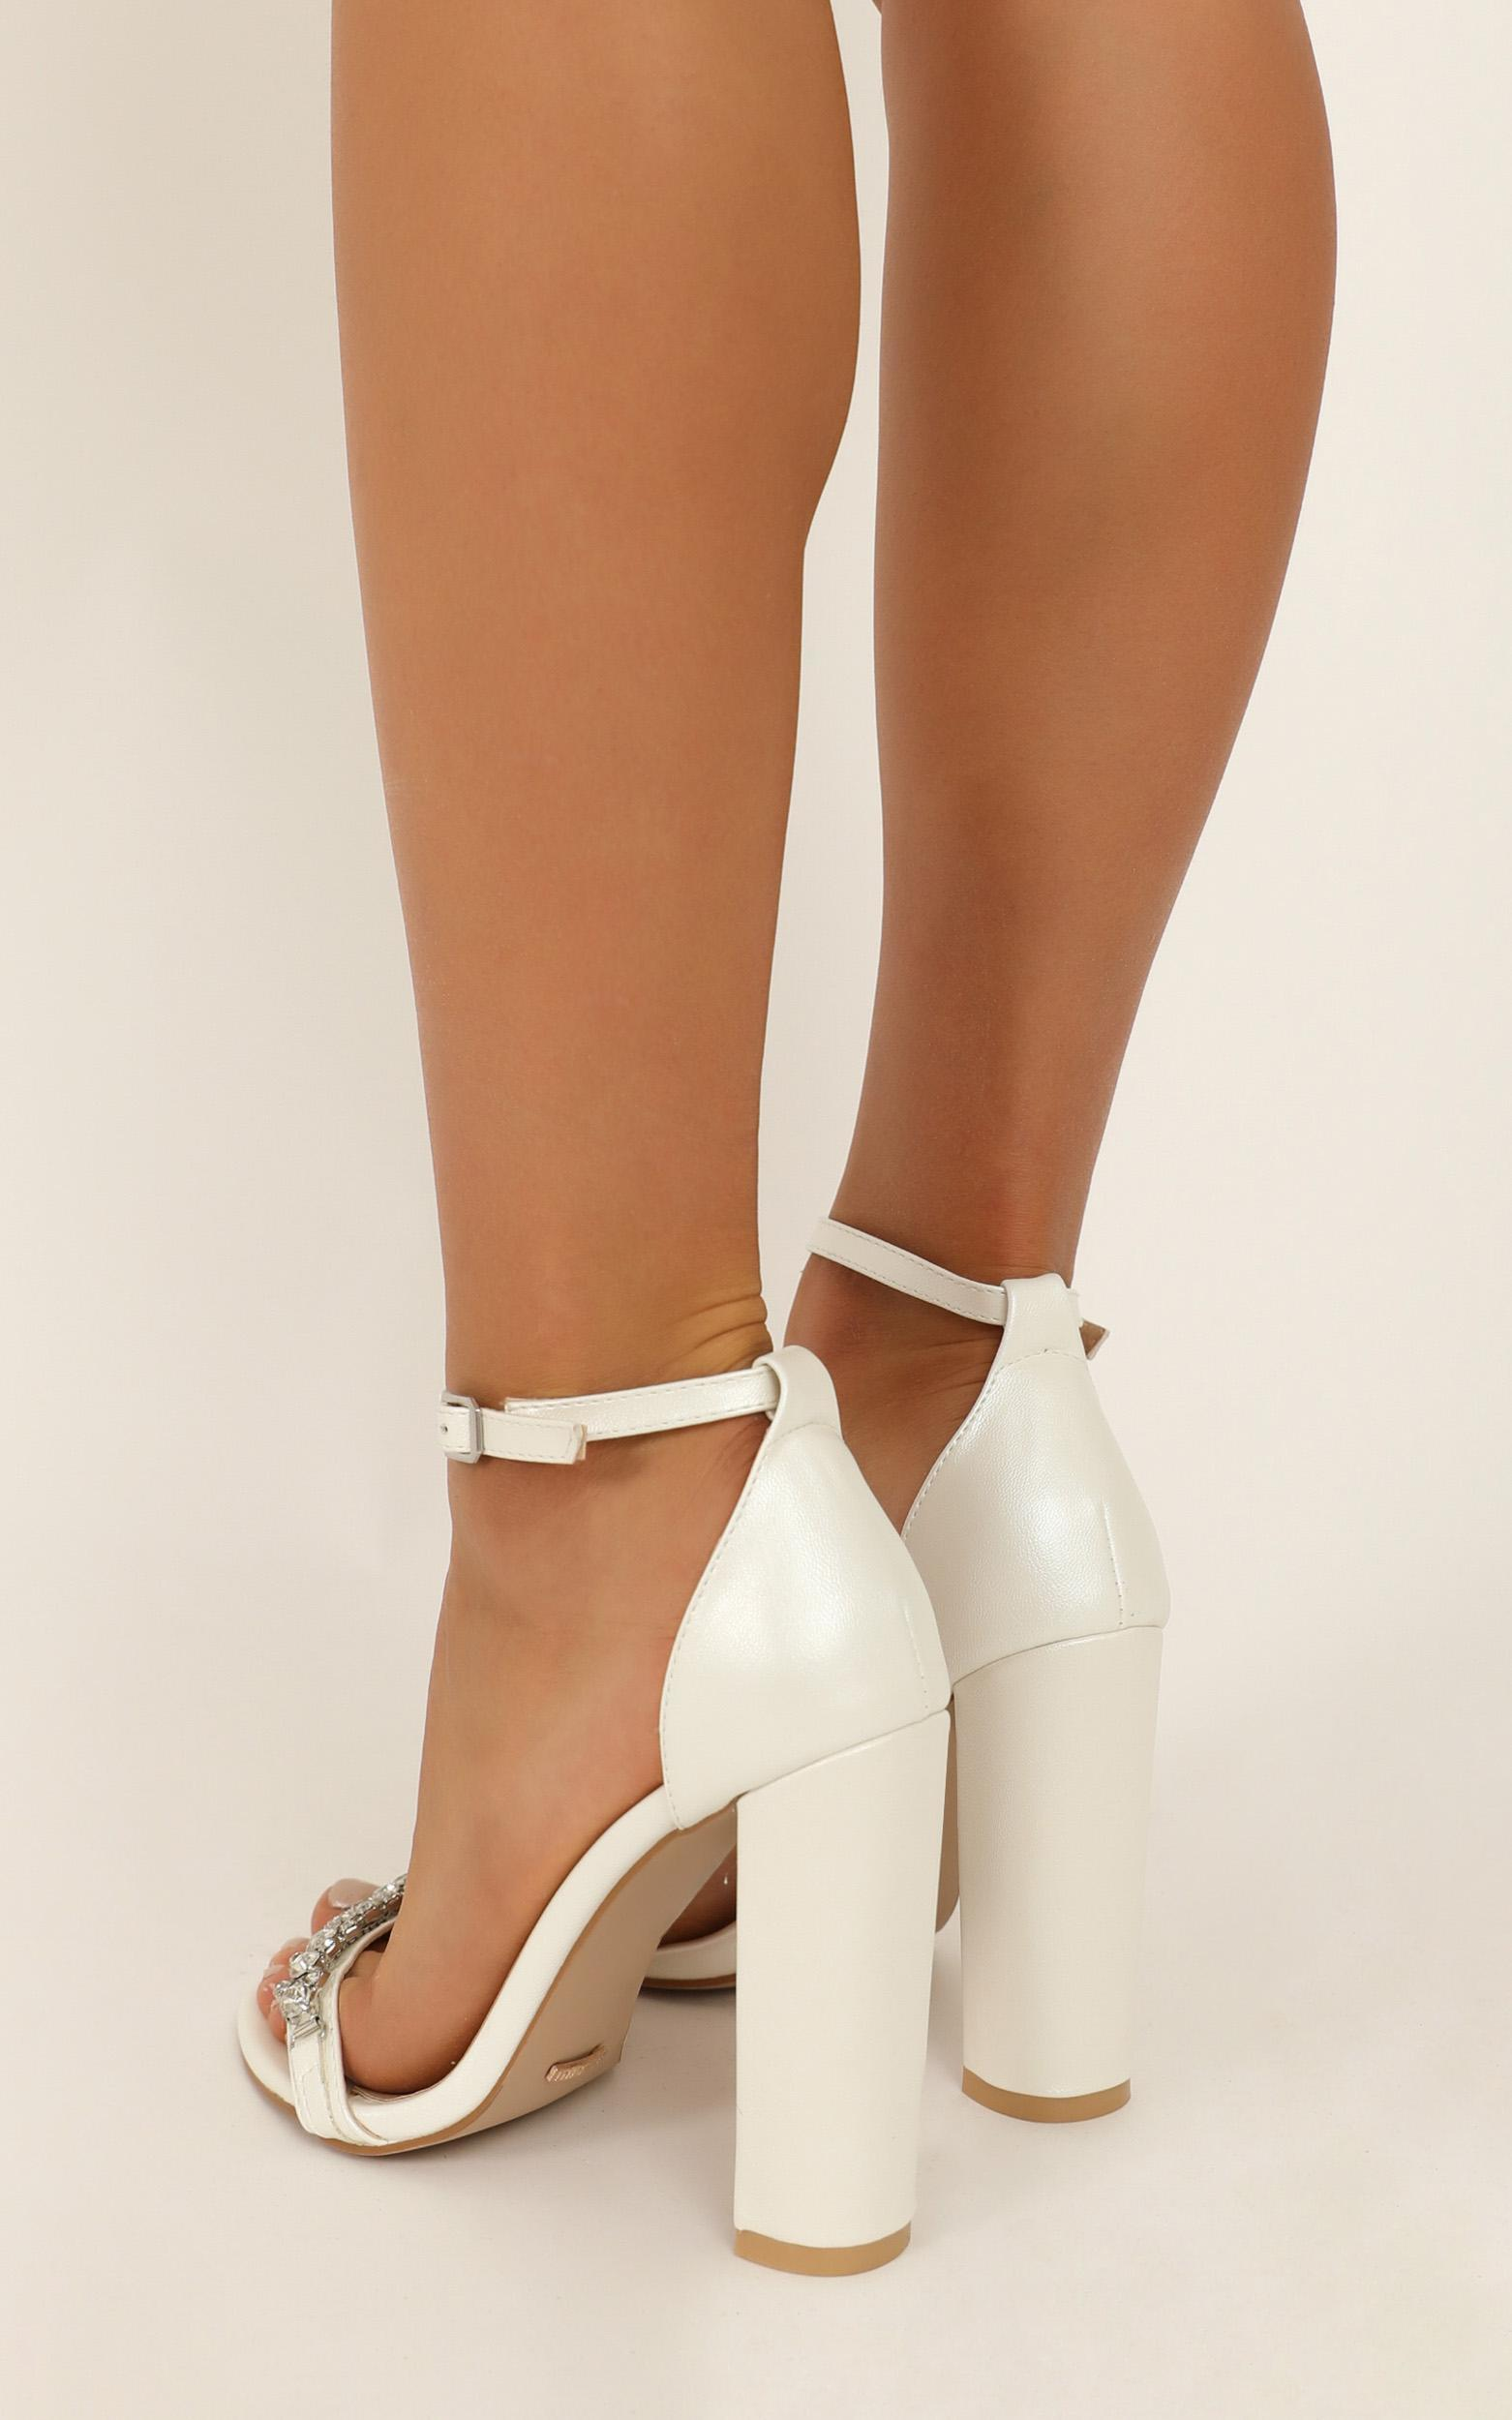 Billini - Laine Heels In white pearl - 10, White, hi-res image number null